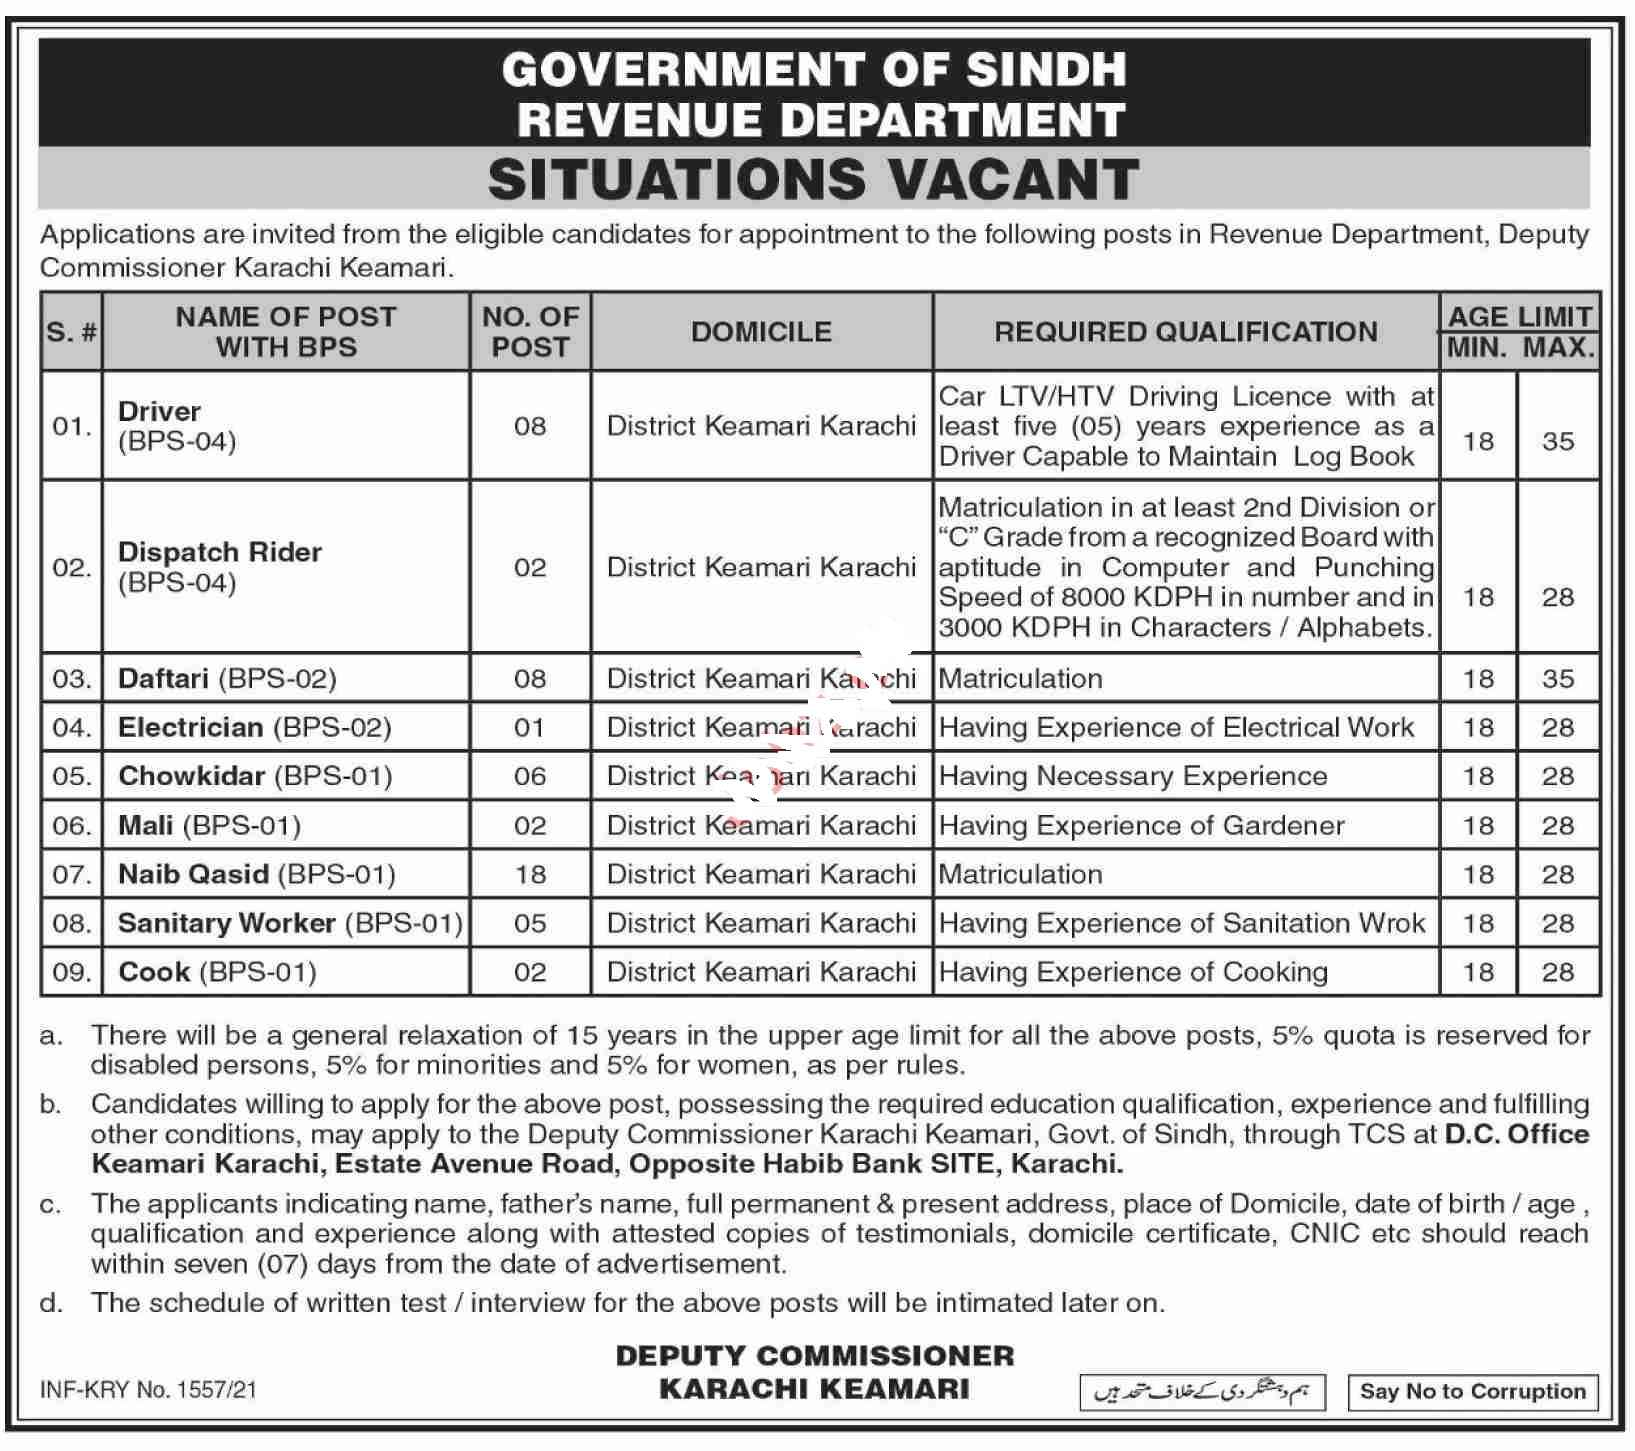 Revenue Department Government of Sindh Jobs 2021Driver, LTV Driver, HTV Driver, Dispatch Rider, Daftari, Electrician, Chowkidar, Mali, Naib Qasid, Sanitary Worker and more